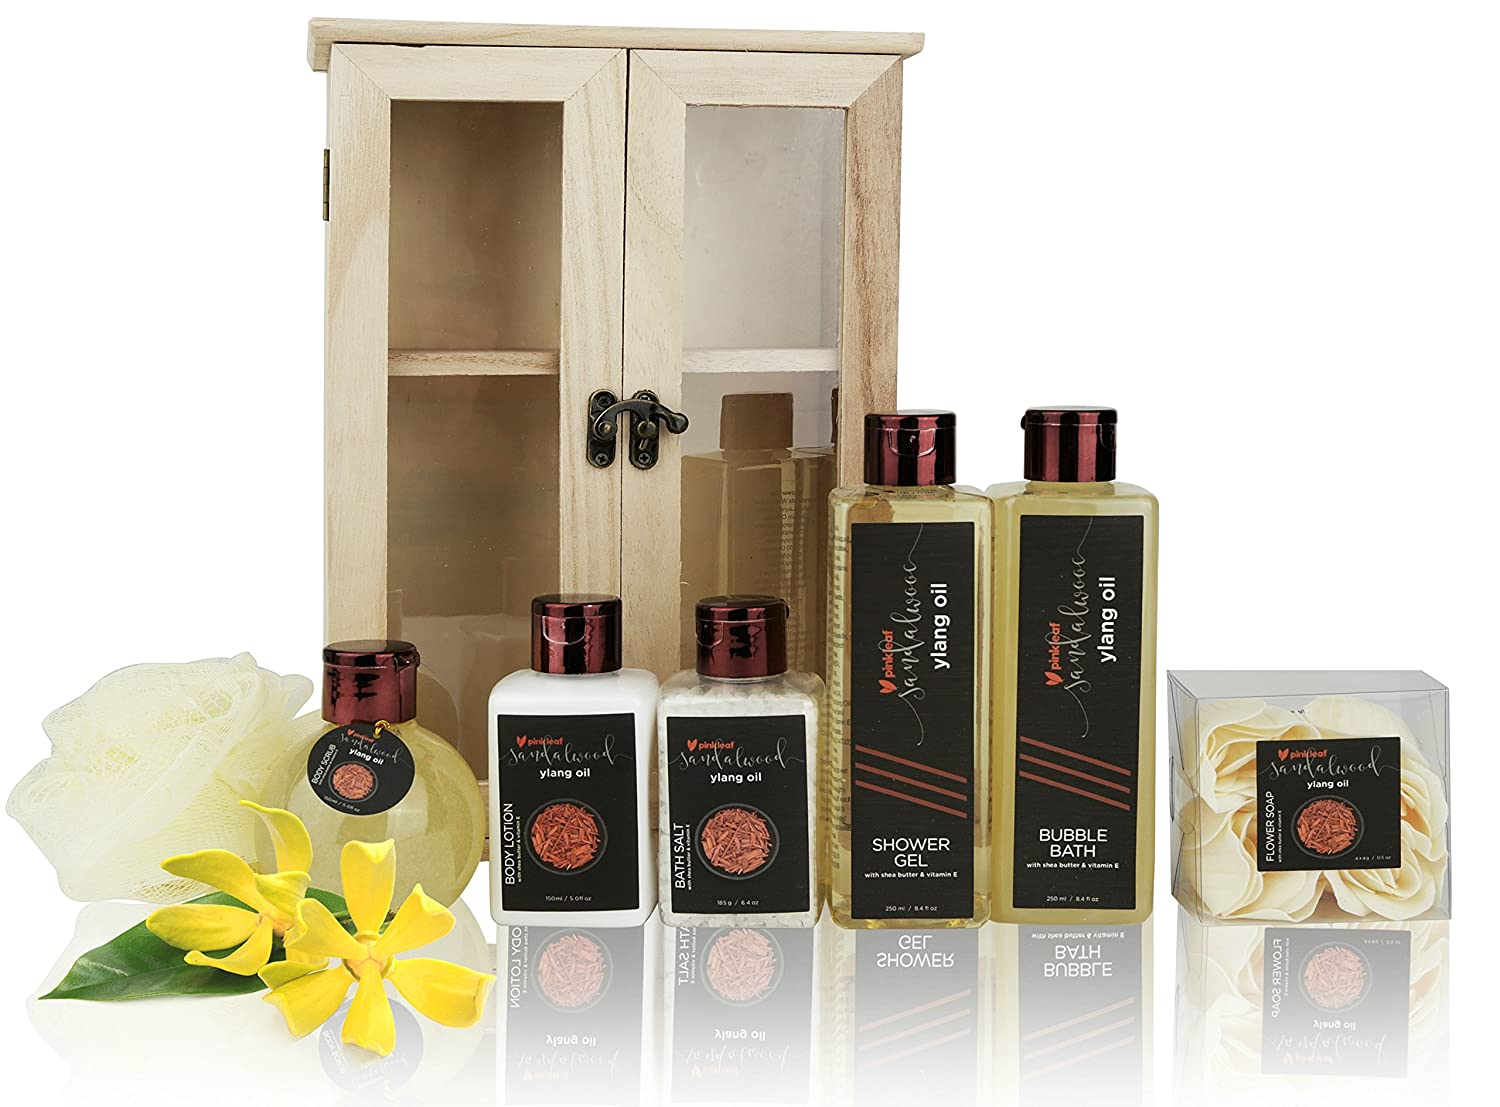 Holiday Gift Basket For Women, Sandalwood Ylang Oil with Shea Butter & Vitamin E, Spa Gift Set, In Wooden Cabinet. 6 Greeting Cards included